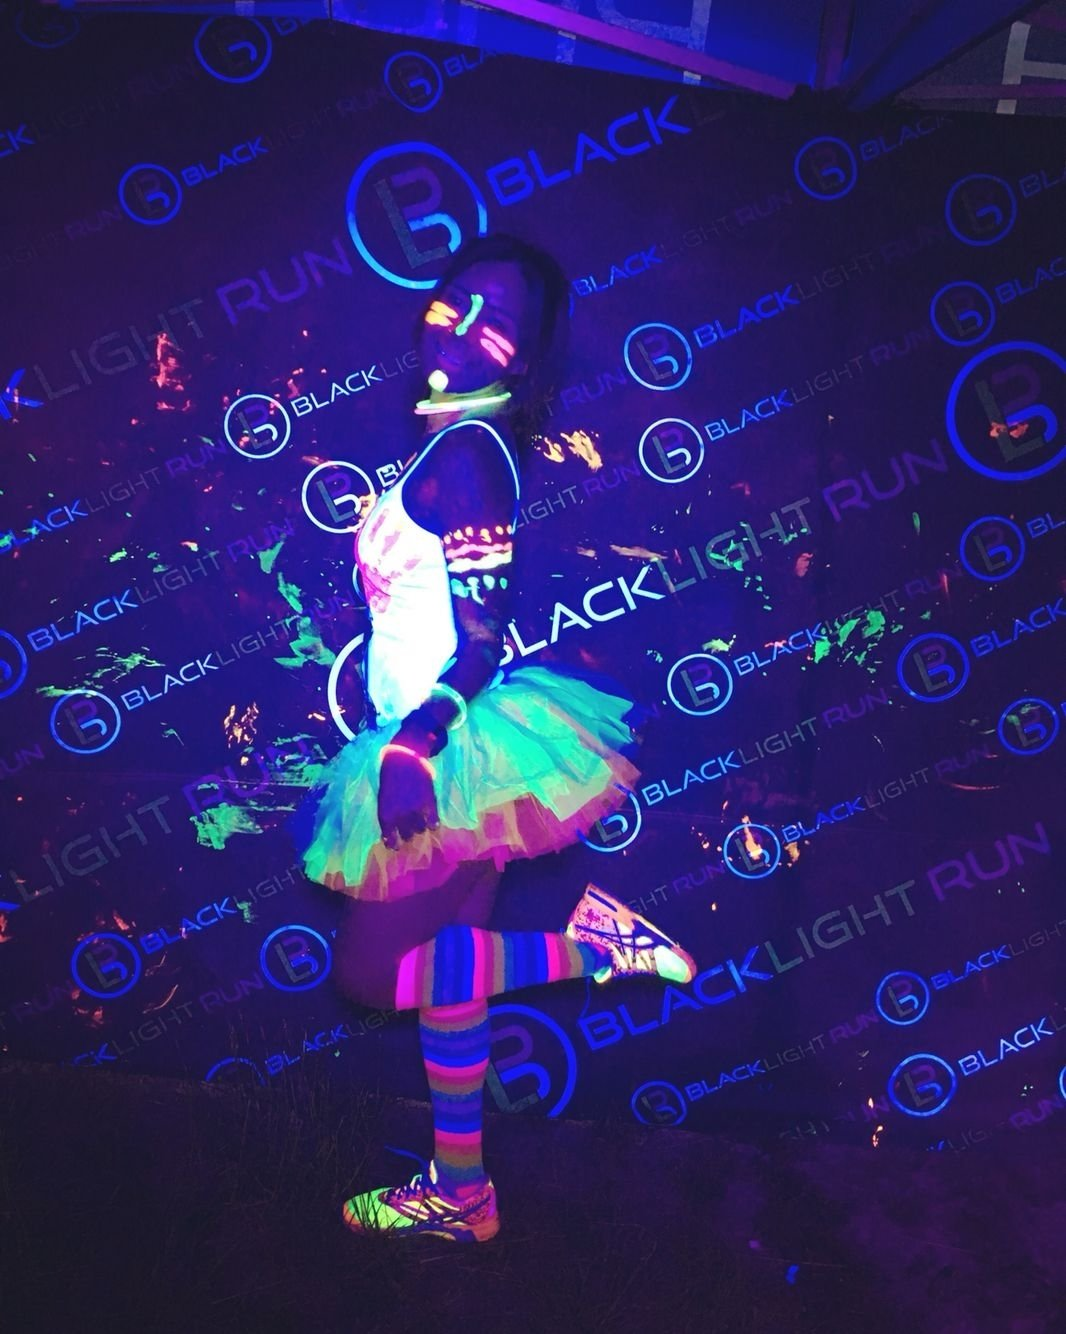 10 Trendy Glow In The Dark Outfit Ideas blacklight party outfit pinteres 2021